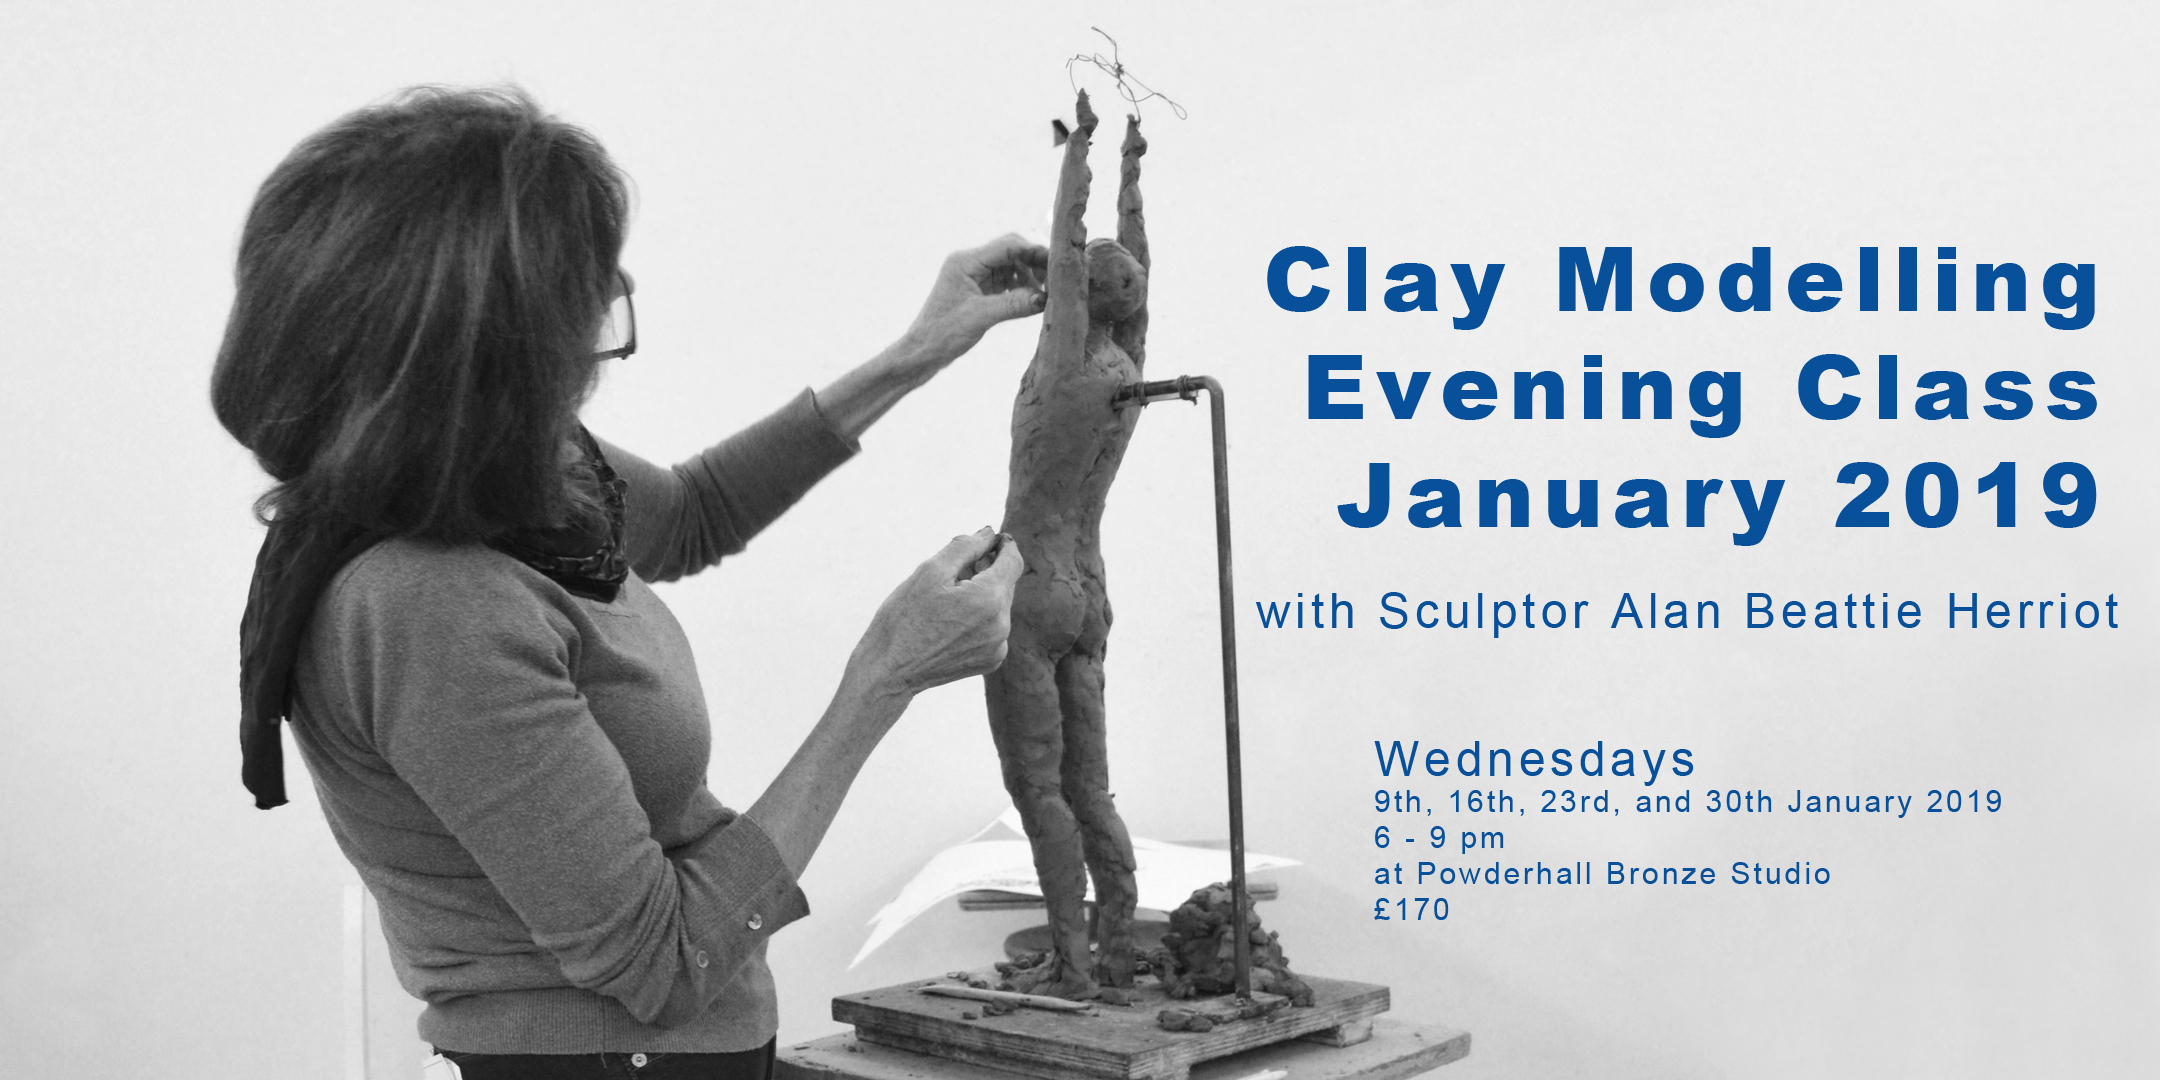 Clay Modelling Evening Class with Alan Beattie Herriot